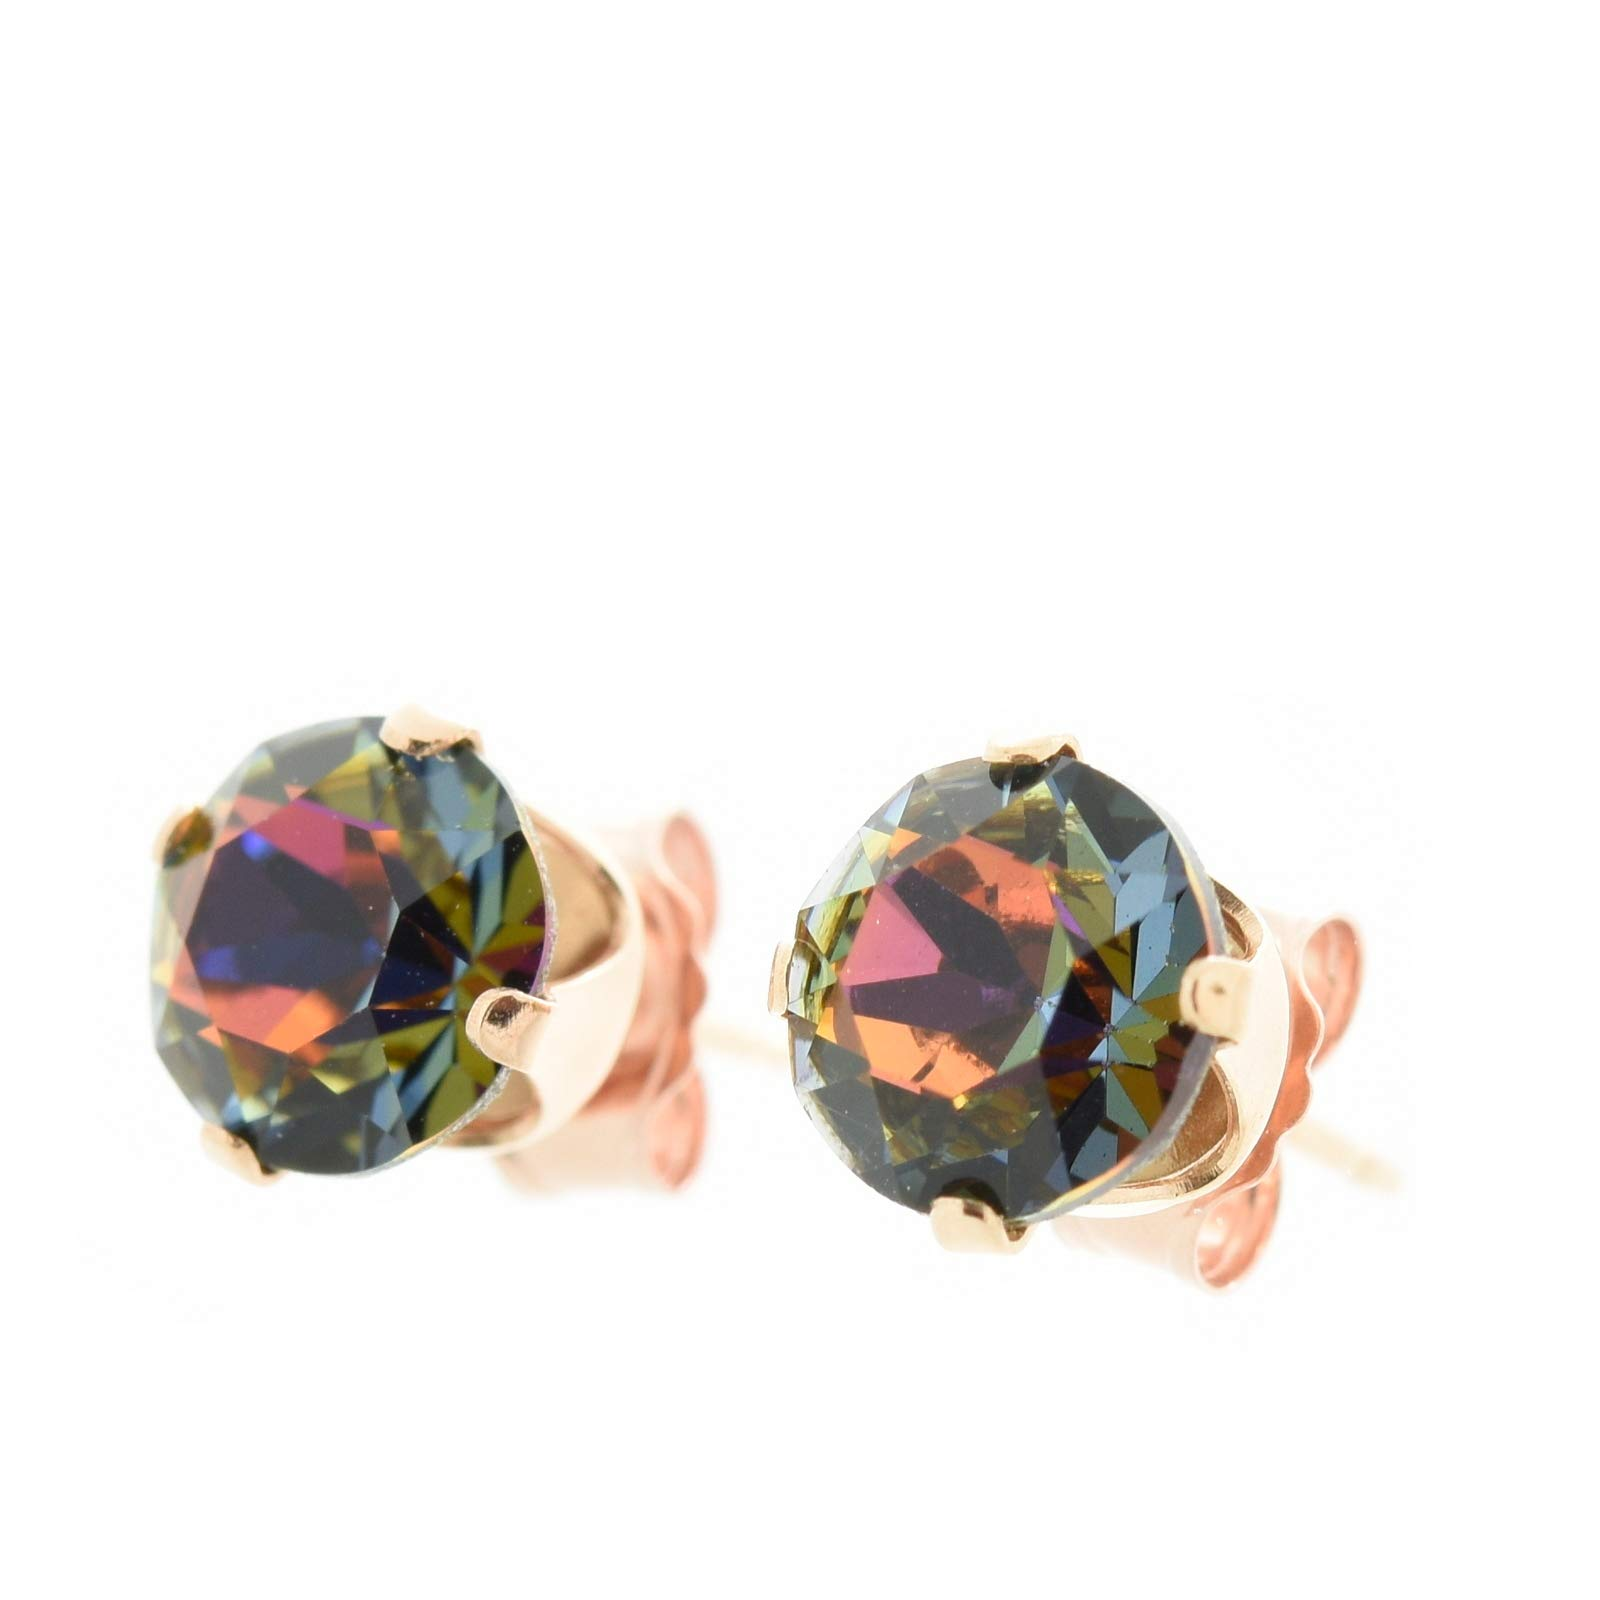 pewterhooter 18ct Rose gold on Silver earrings. Sparkling Volcano crystal from Swarovski. Gift box.